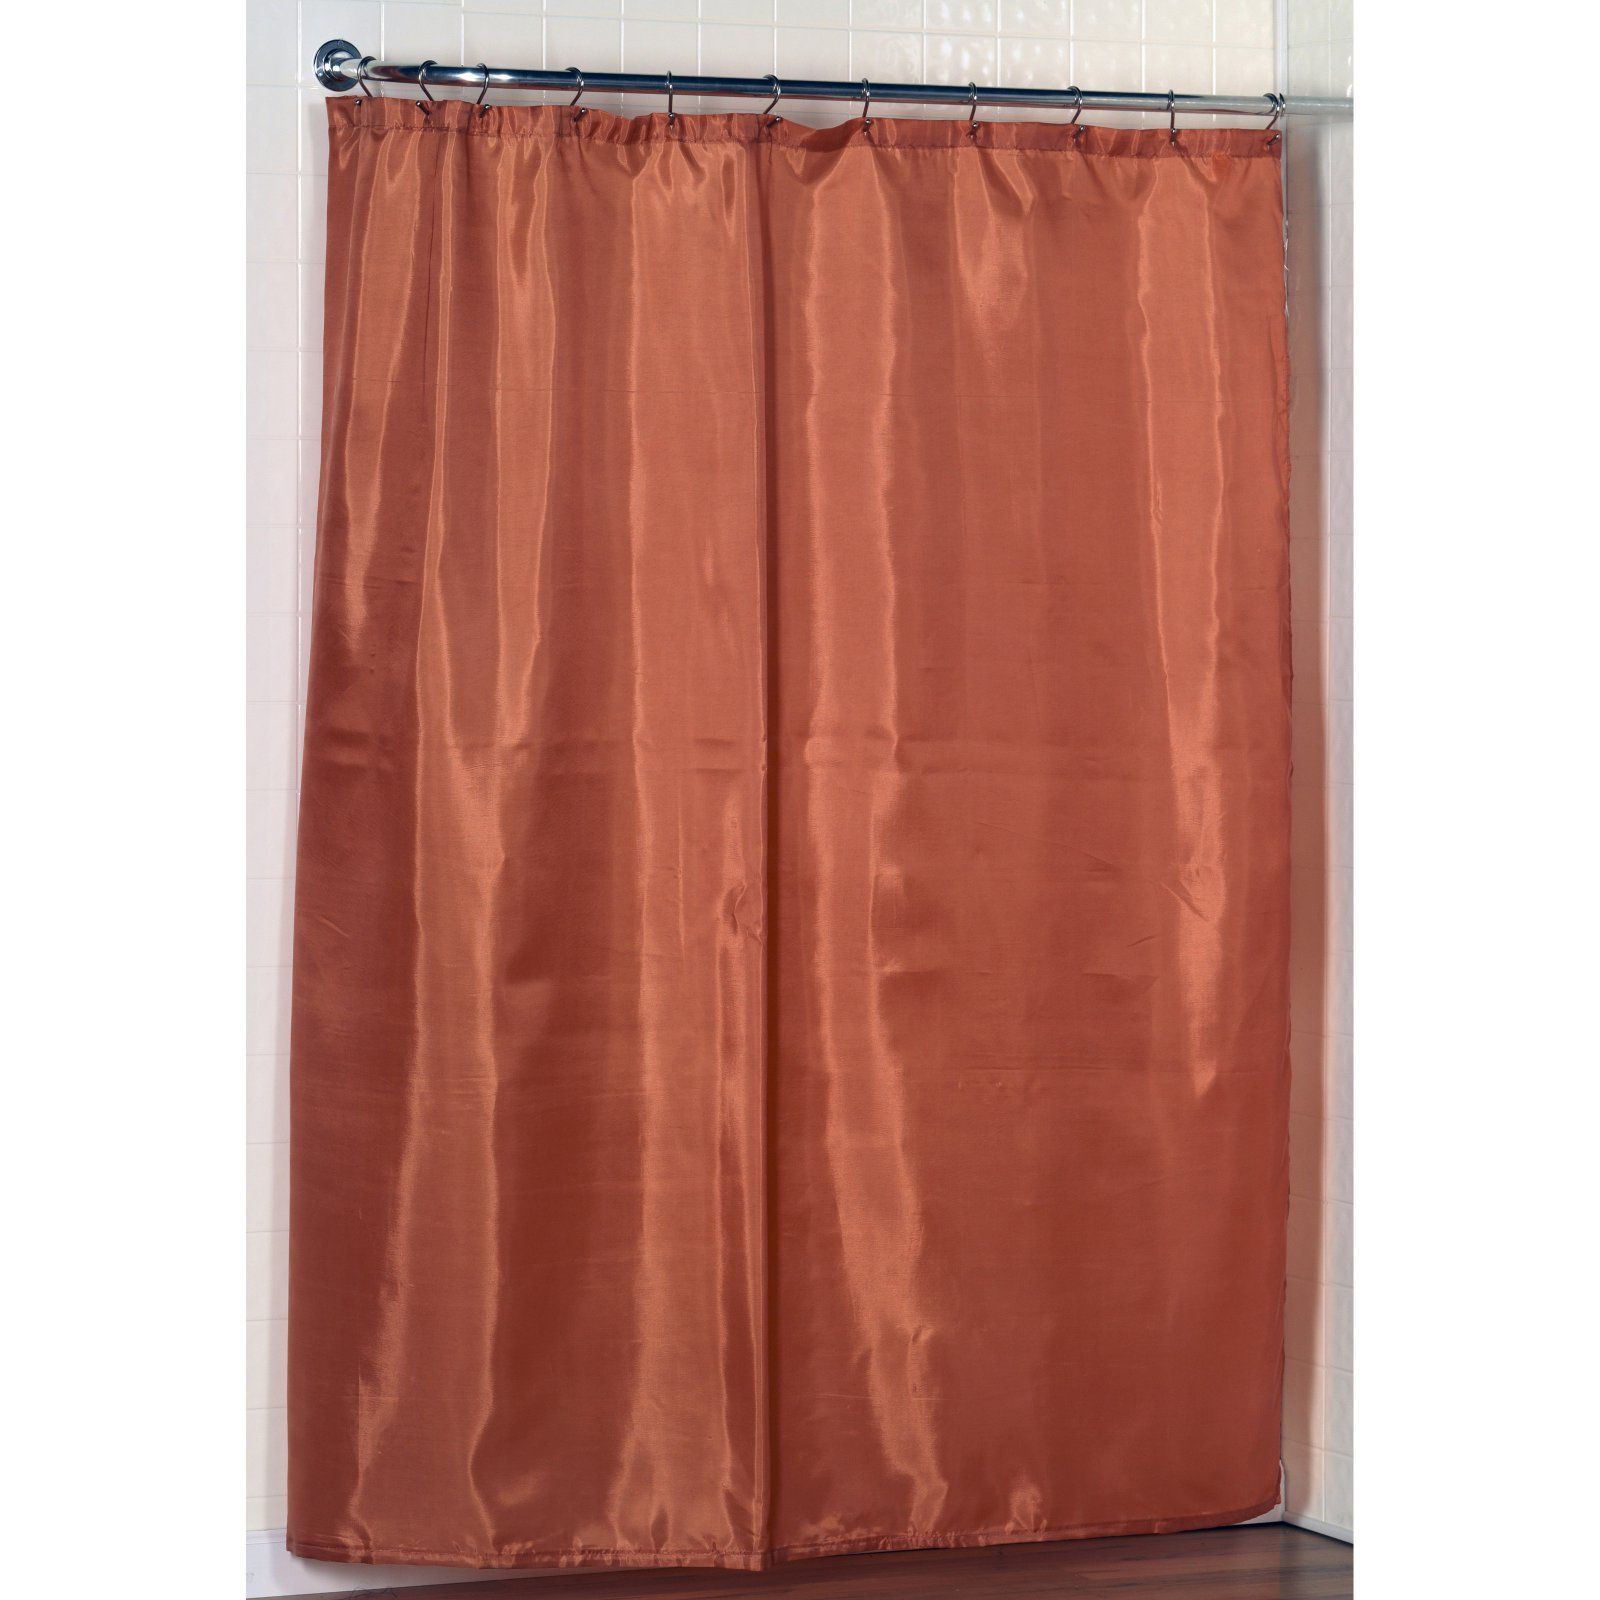 Carnation Home Fashions Fabric Shower Curtain Liner With Weighted Bottom Hem Tangerine